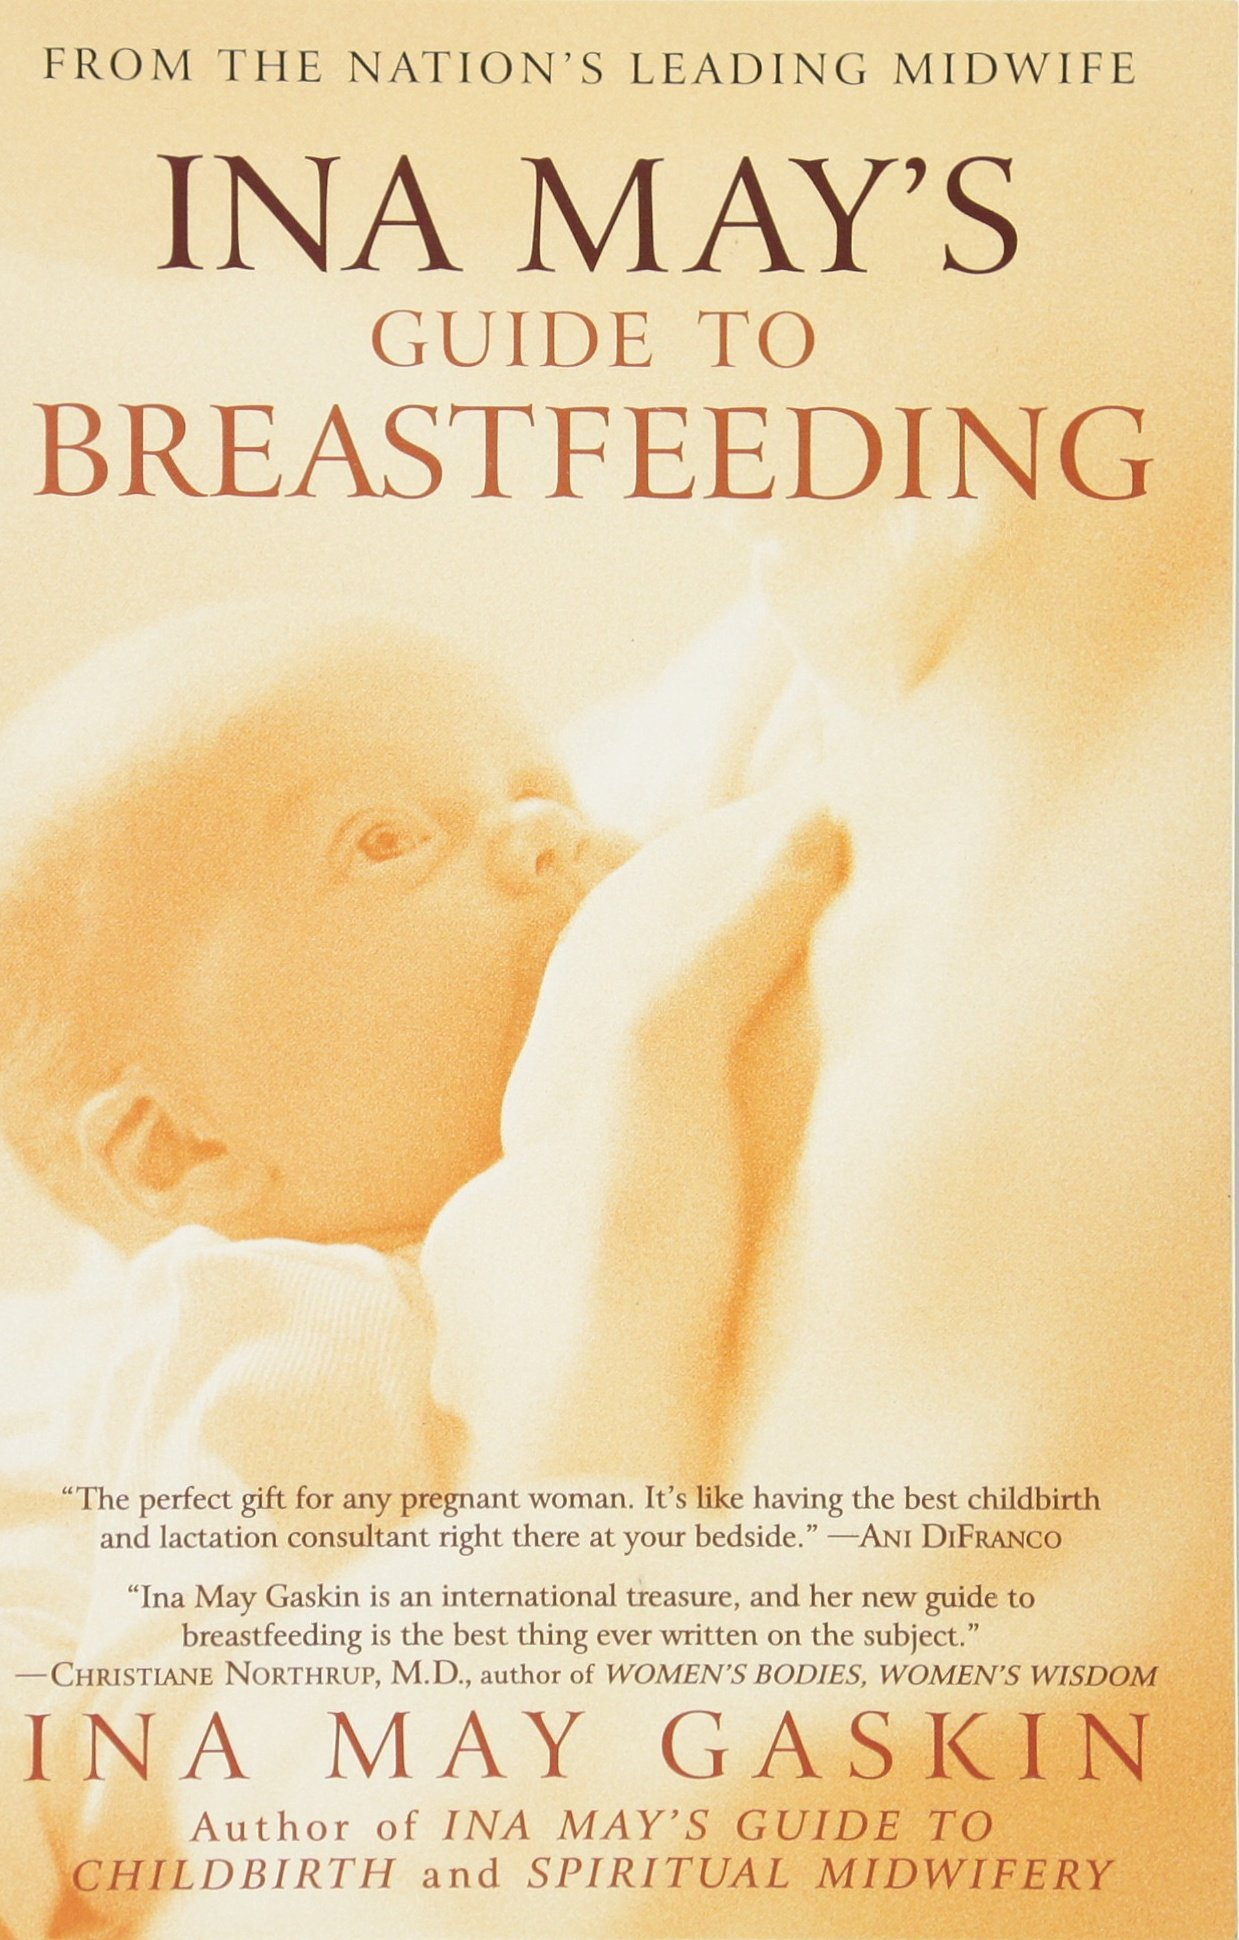 Ina May's Guide To Breastfeeding: From The Nation's Leading Midwife: Ina  May Gaskin: 9780553384291: Amazon: Books